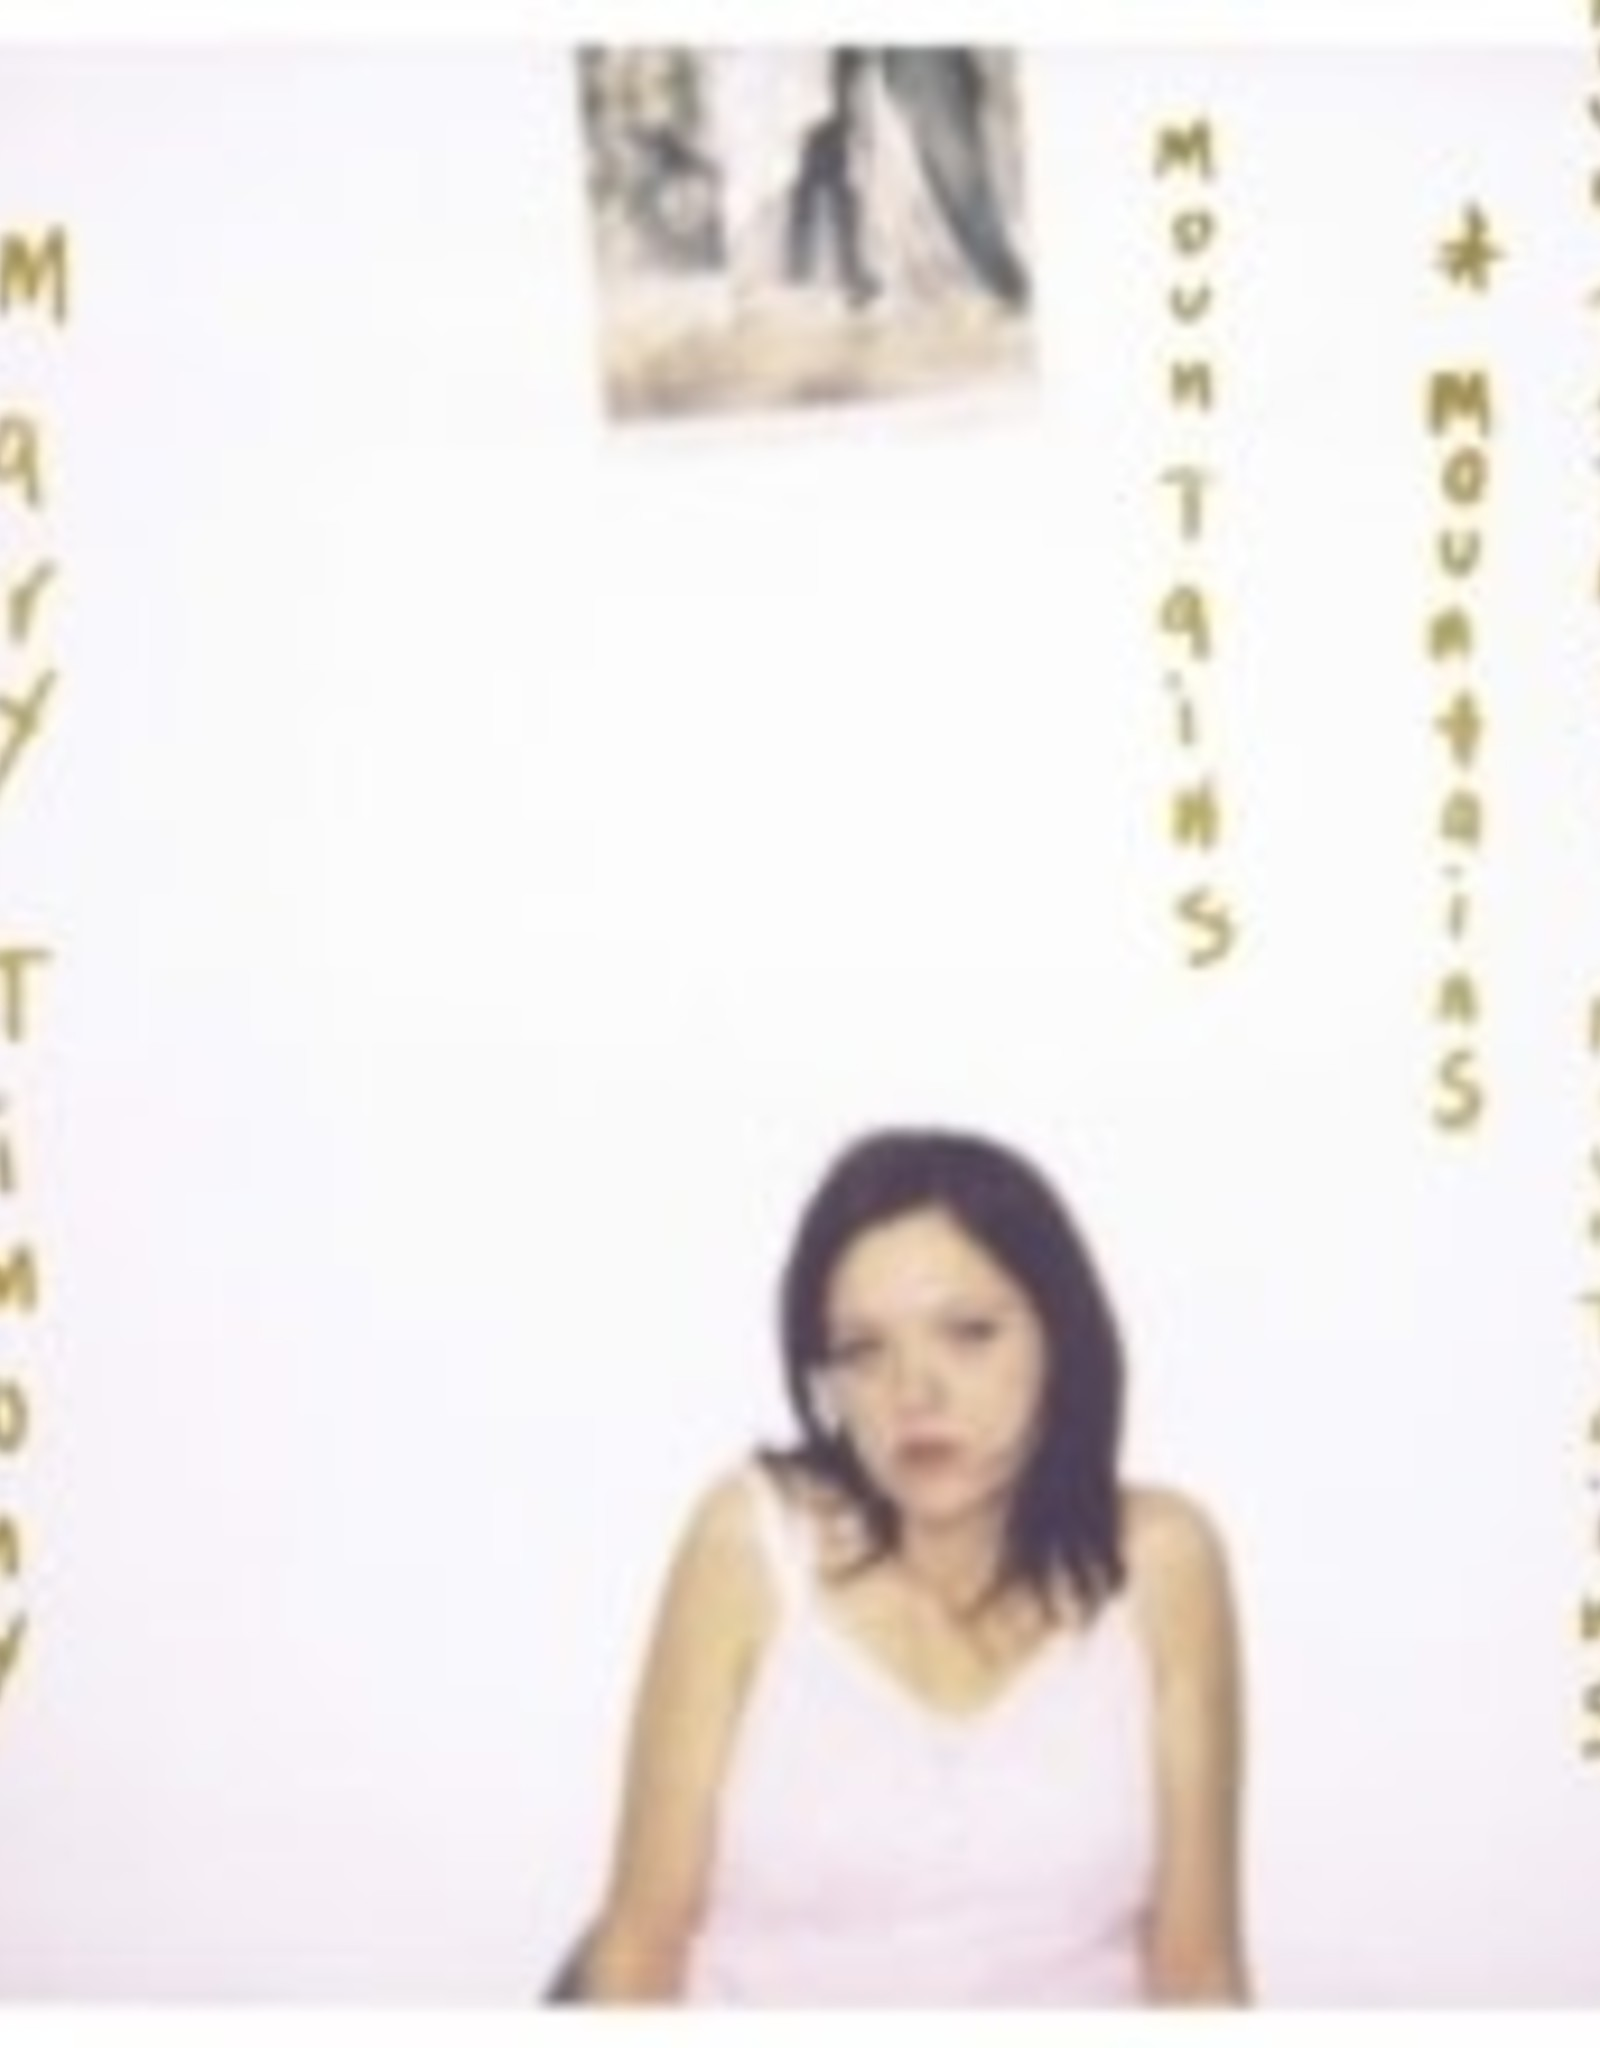 Mary Timony - Mountains (Gatefold LP Jacket, Anniversary Edition, Expanded Version)